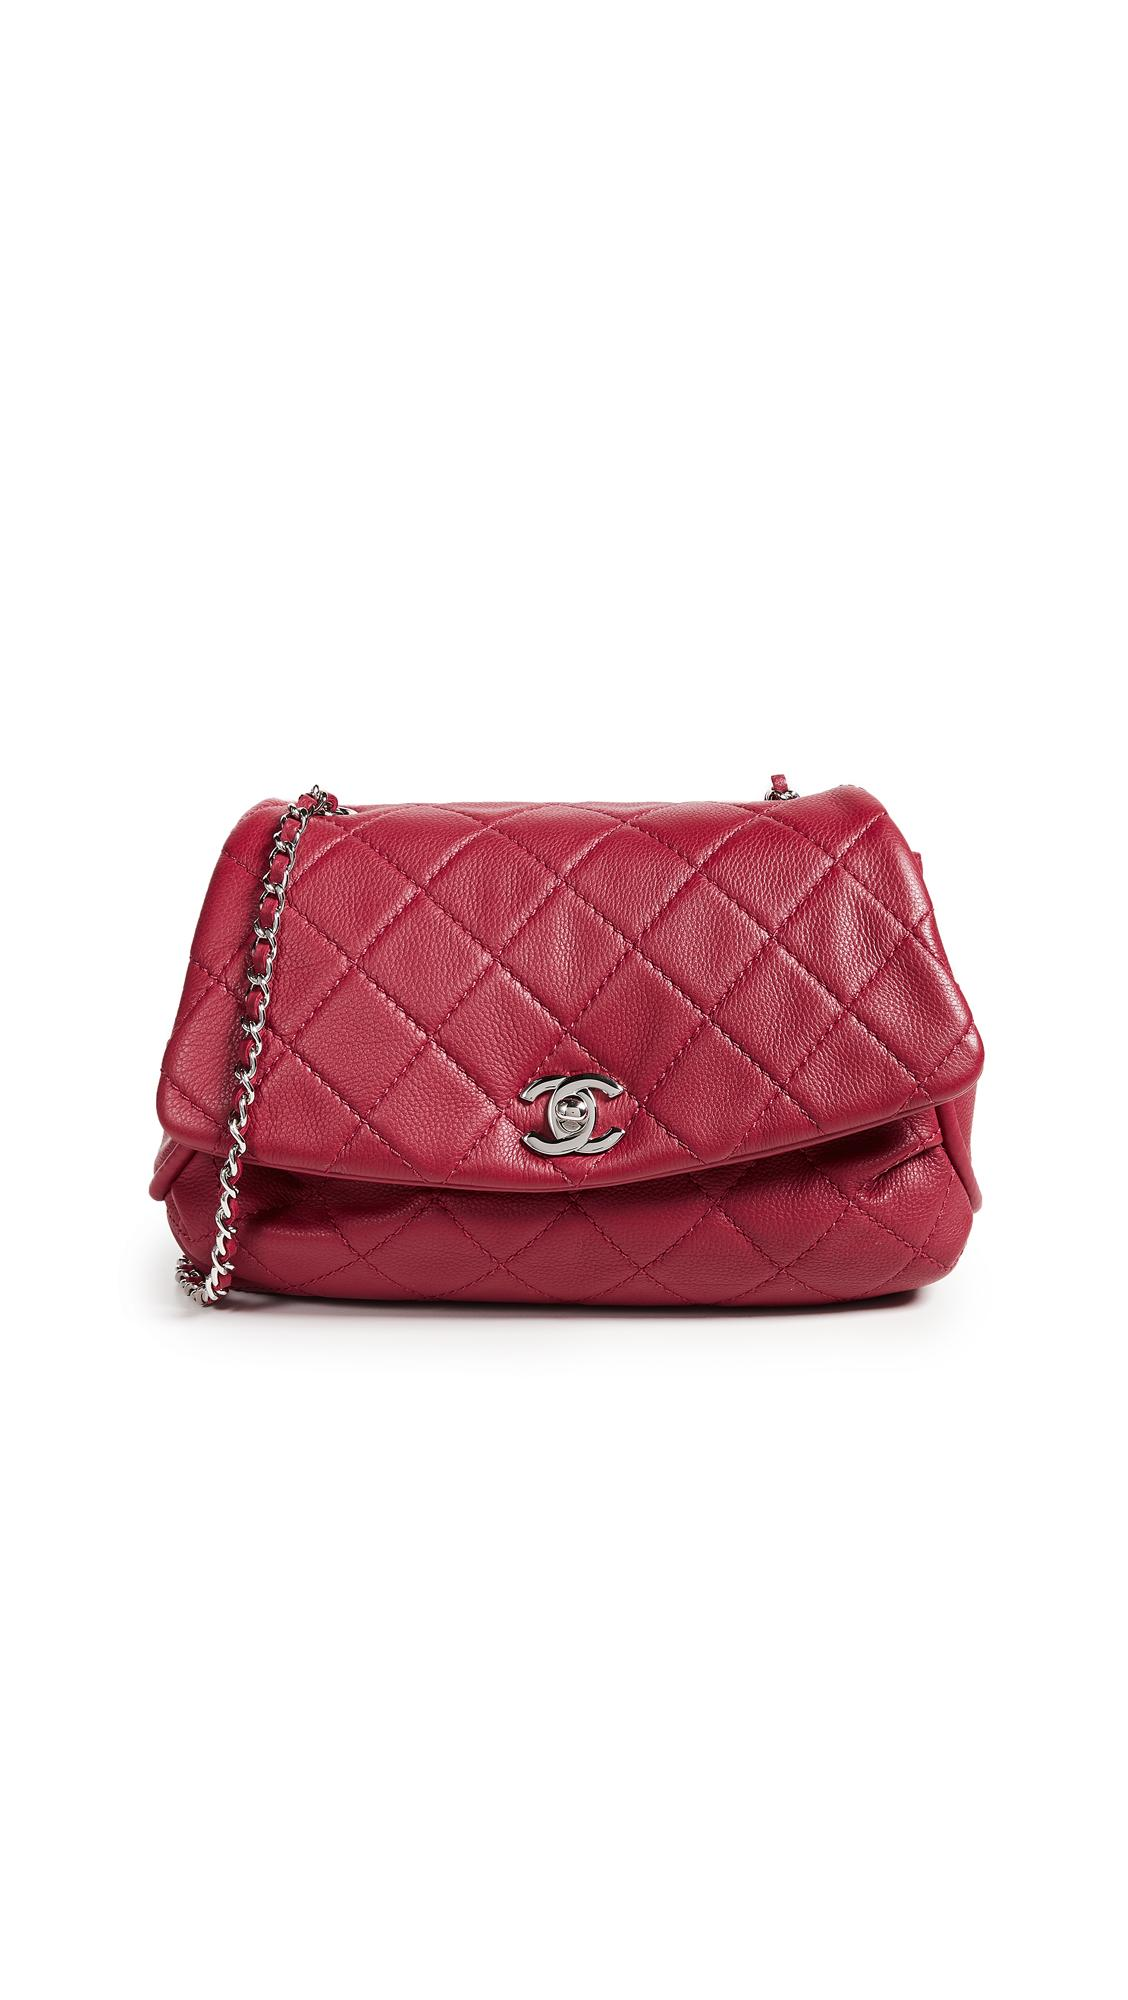 8471694c09c7 What Goes Around Comes Around Chanel Lambskin Round Flap Bag In Red ...